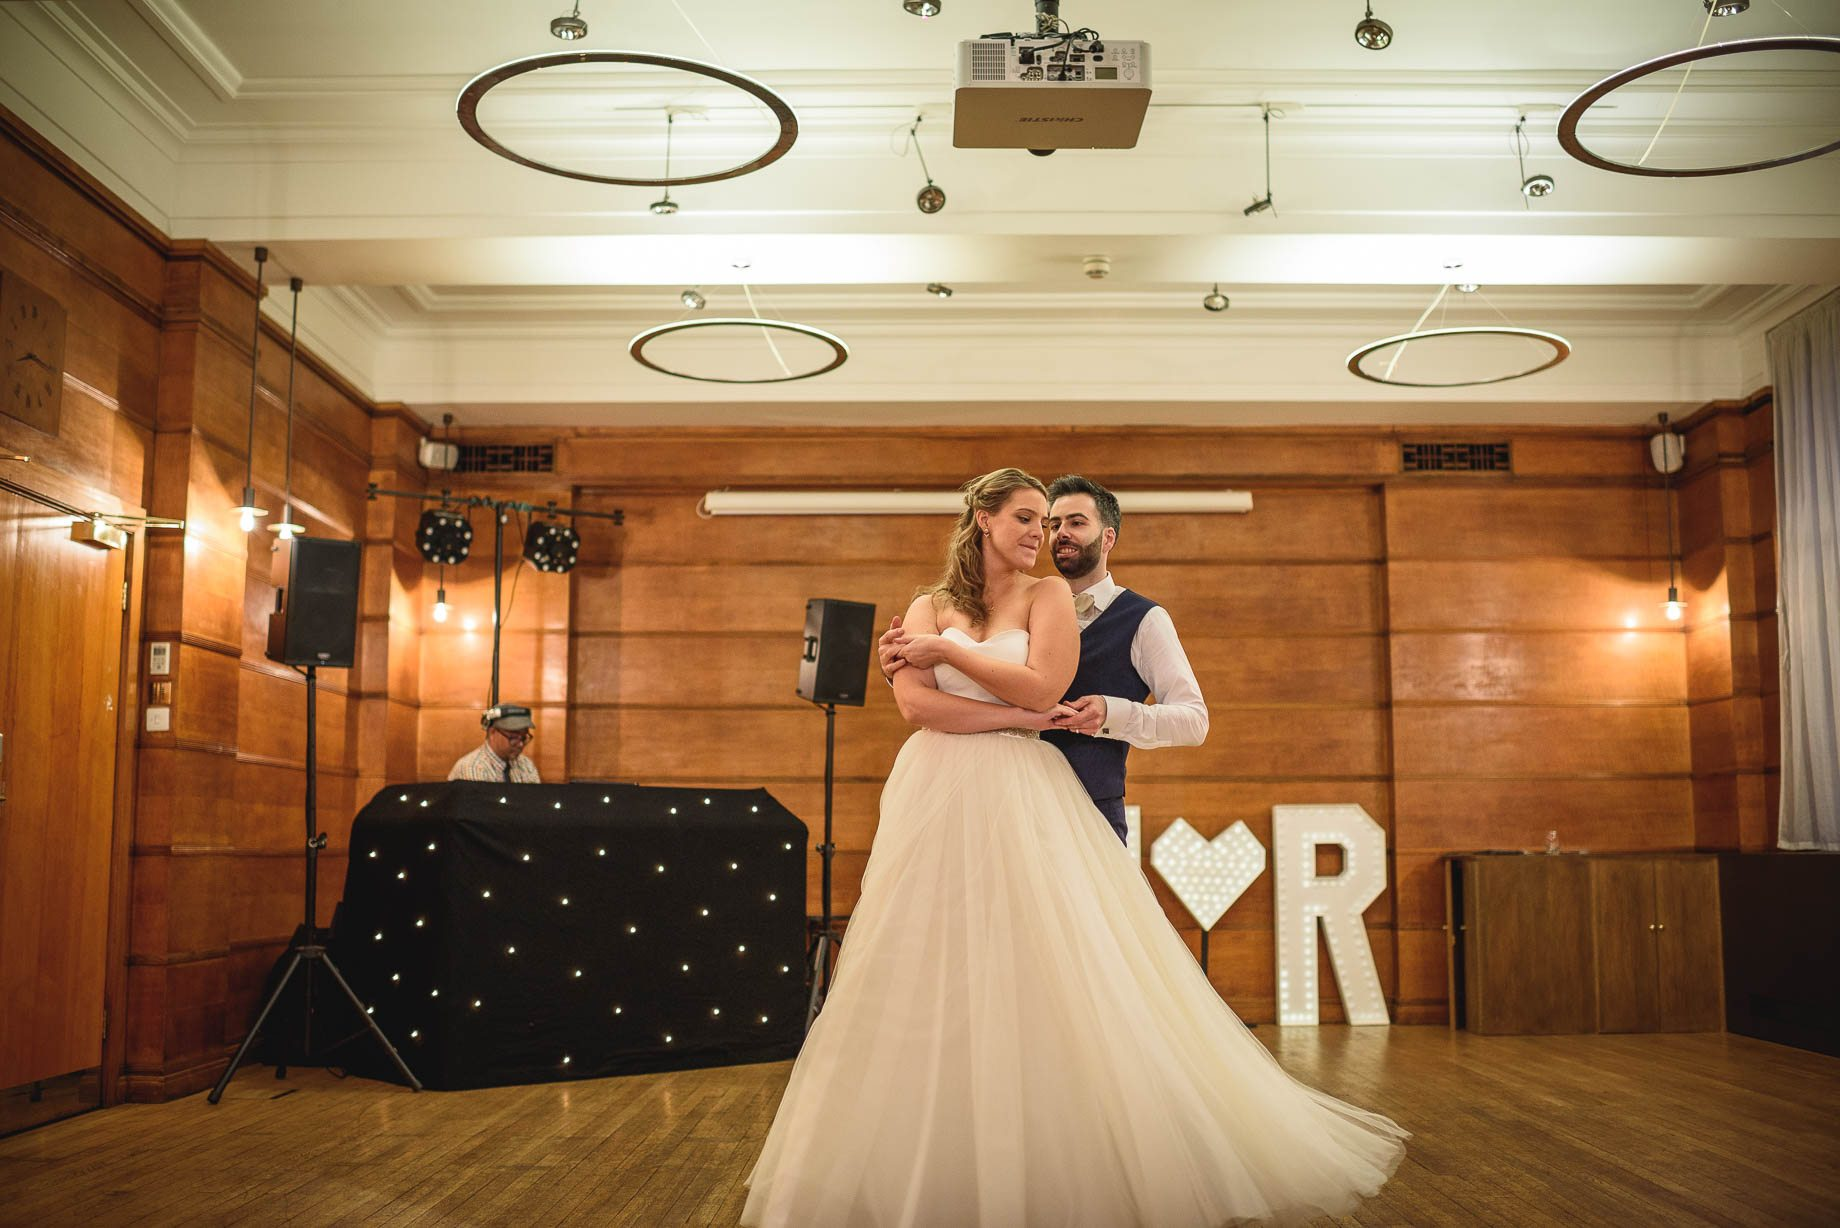 London Wedding Photography - Guy Collier Photography - LJ + Russell (148 of 155)